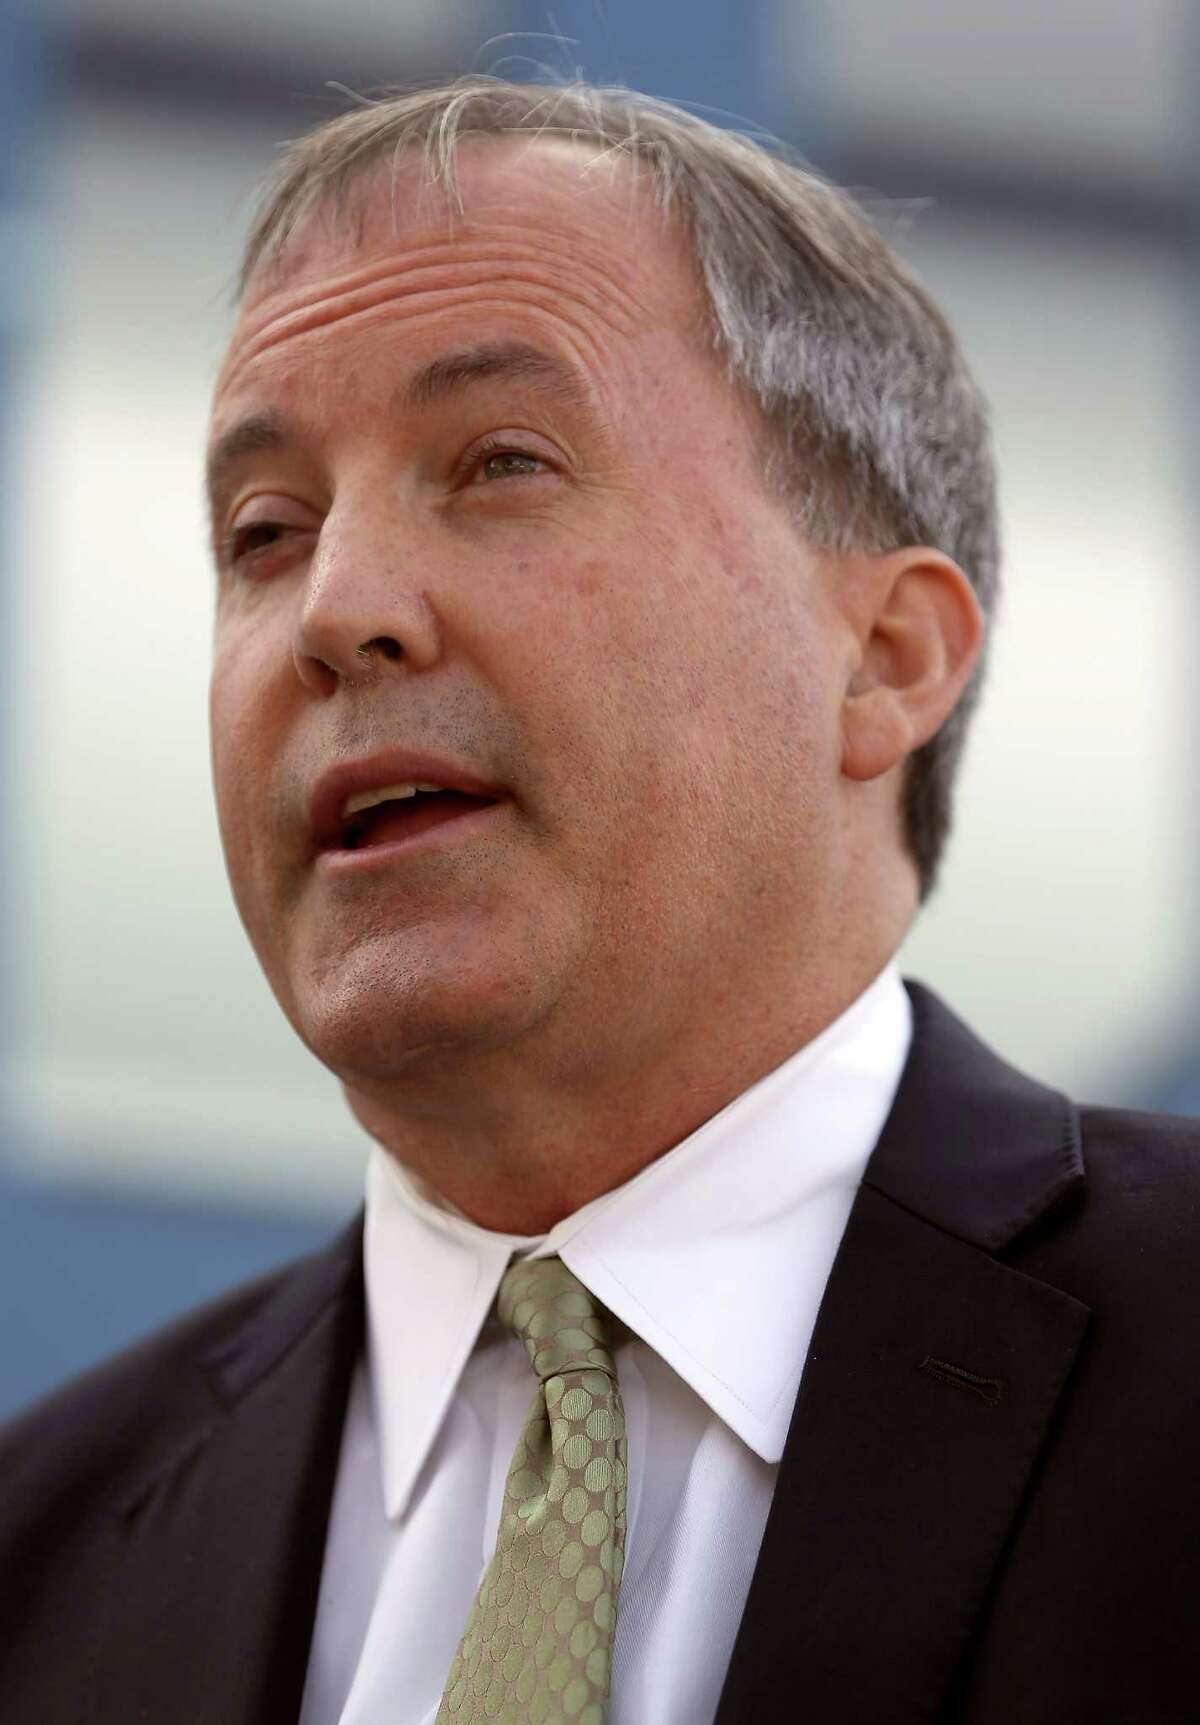 Texas Attorney General Ken Paxton talks about human trafficking during a news conference on Sept. 1 in San Antonio.